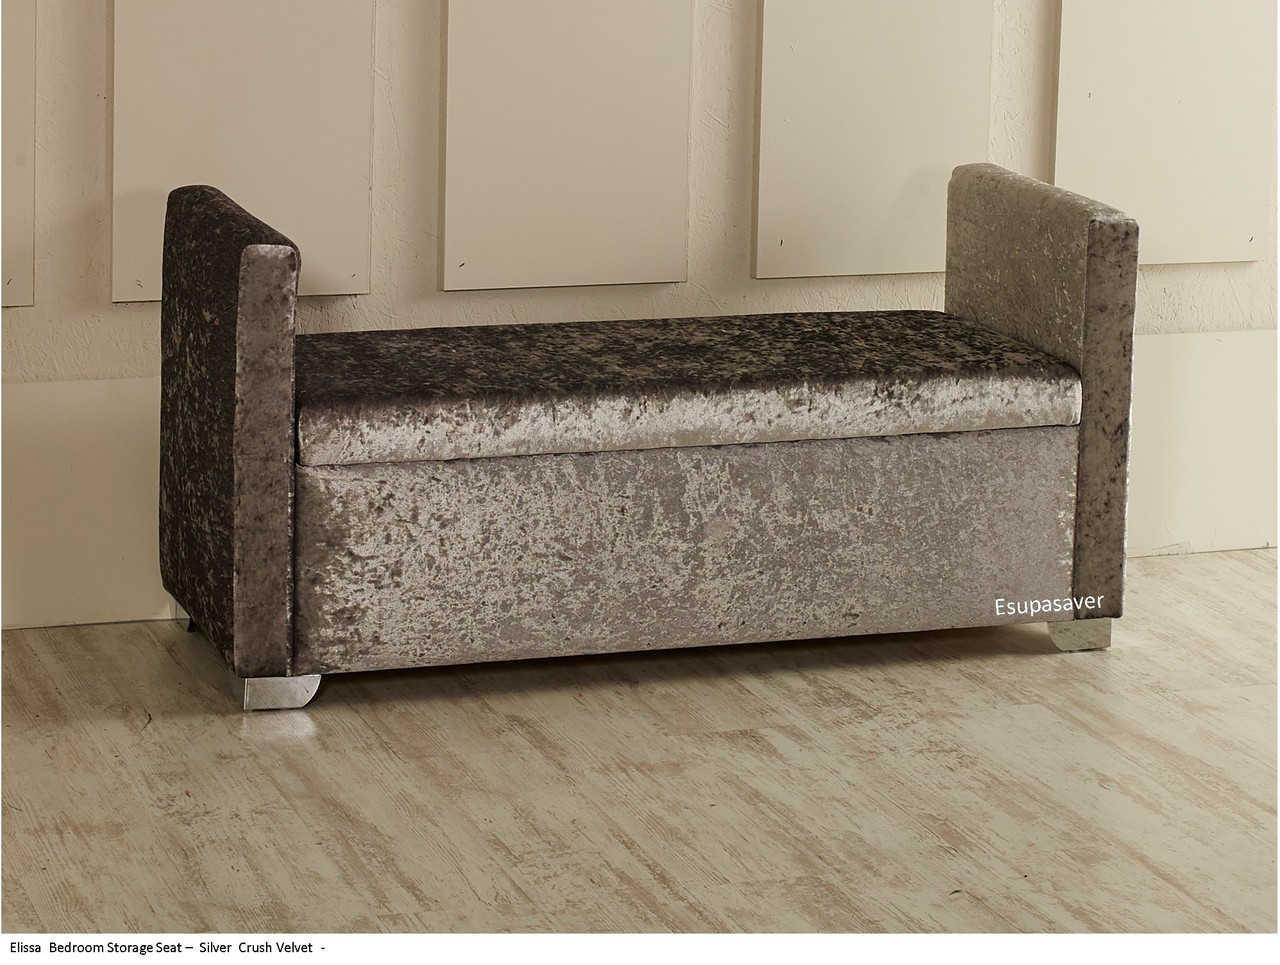 Incredible Elissa Ottoman Storage Box Seat Available In Crush Velvet Chenille Linen Or Faux Suede Fabrics Gmtry Best Dining Table And Chair Ideas Images Gmtryco